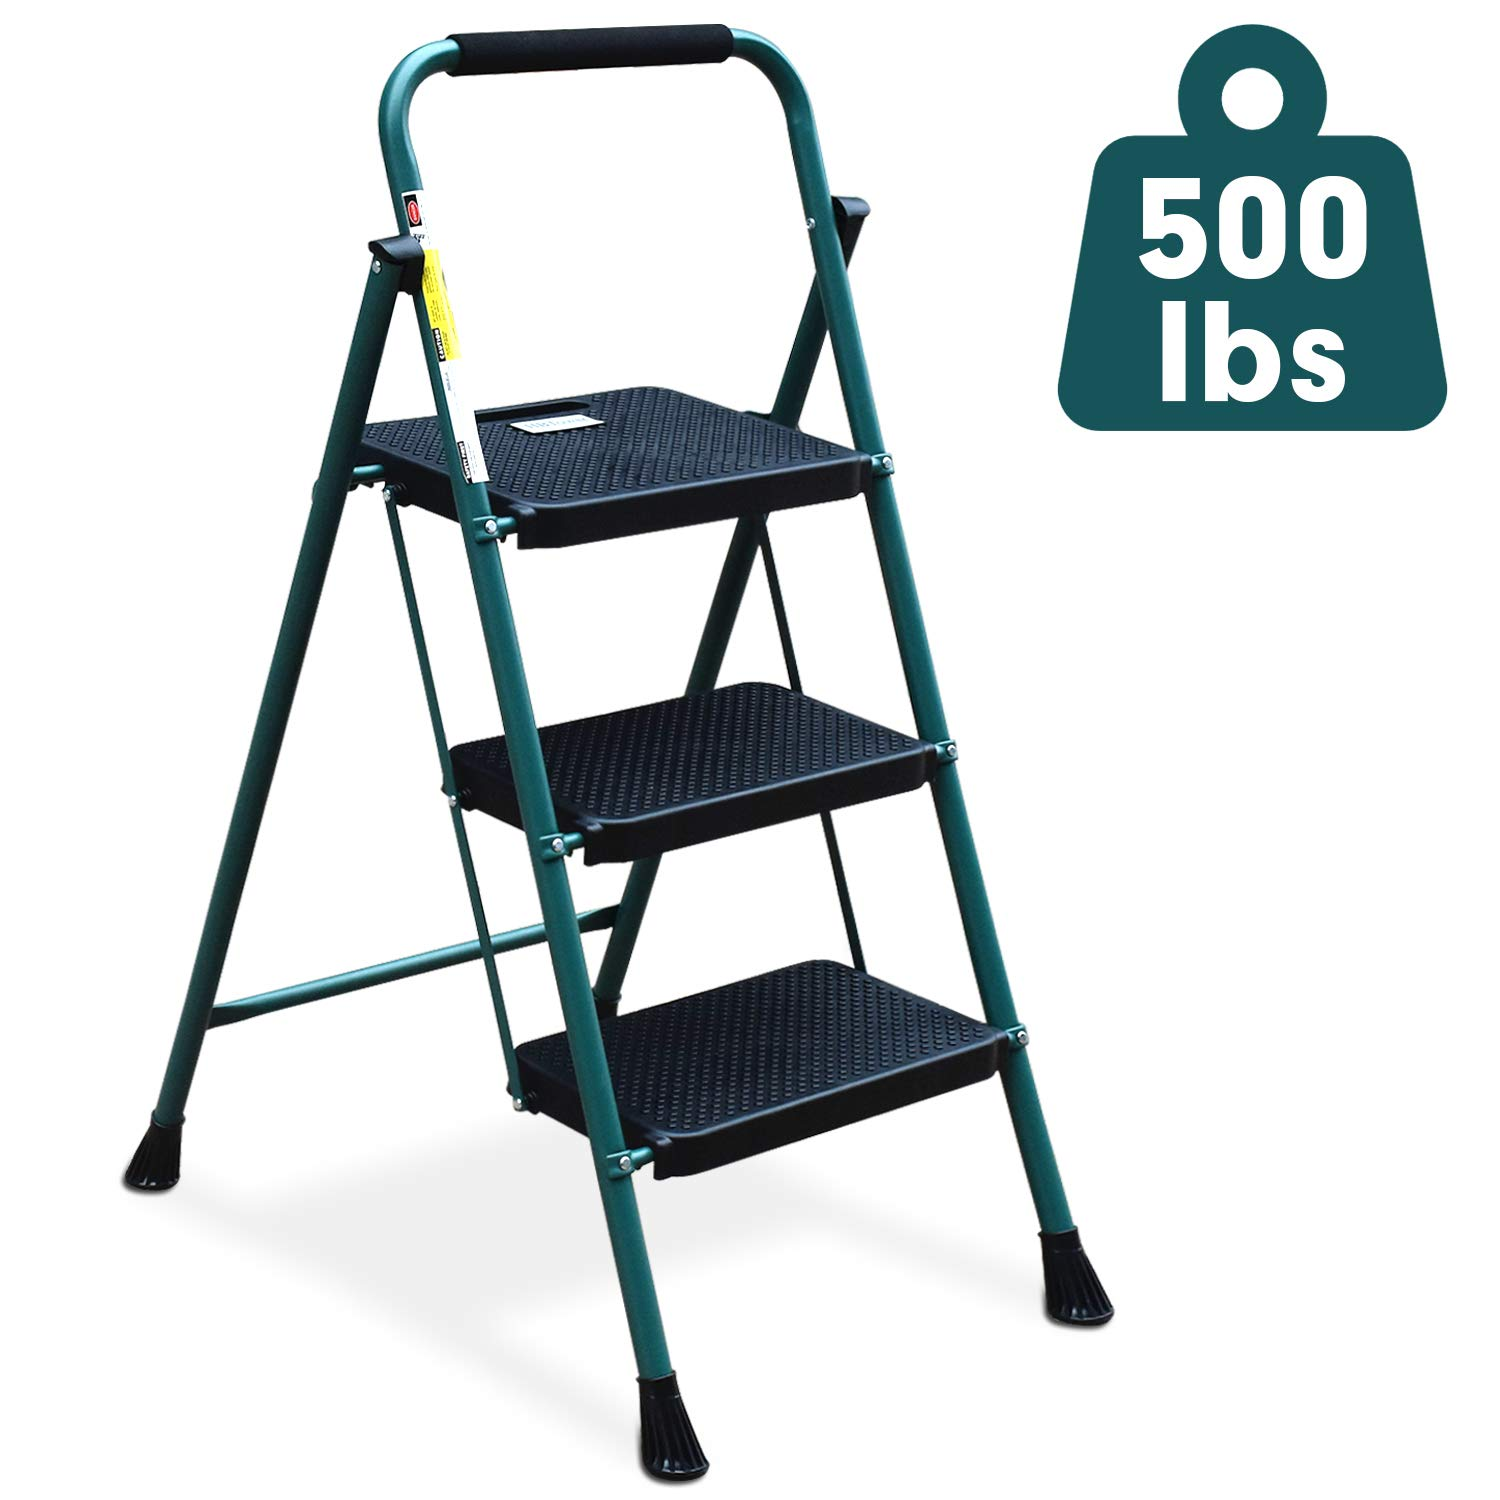 3 Step Ladder, HBTower Folding Step Stool with Wide Anti-Slip Pedal, Sturdy Steel Ladder, Convenient Handgrip, Lightweight 500lbs Portable Steel Step Stool, Green and Black